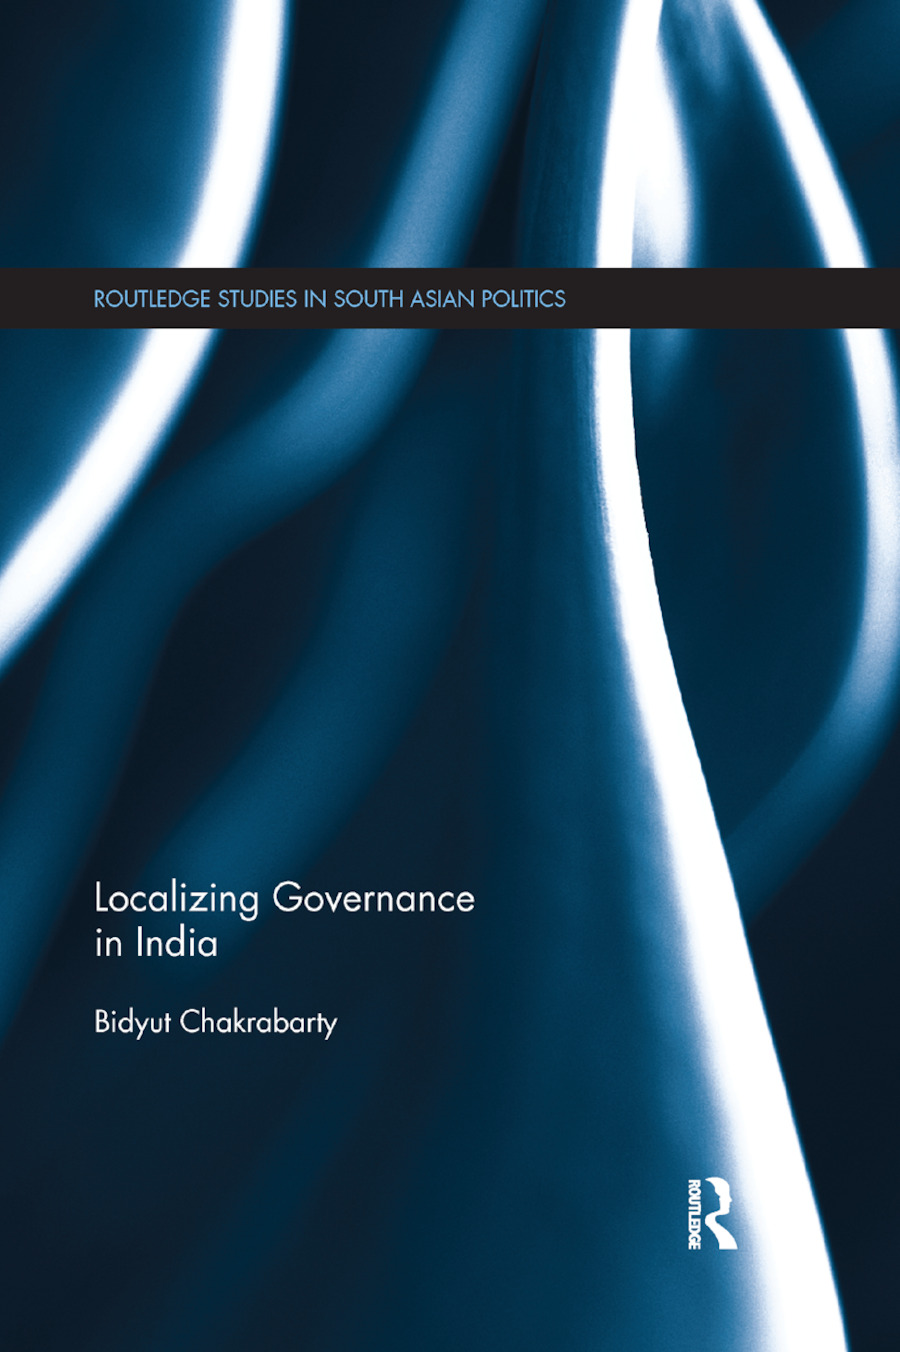 Localizing Governance in India